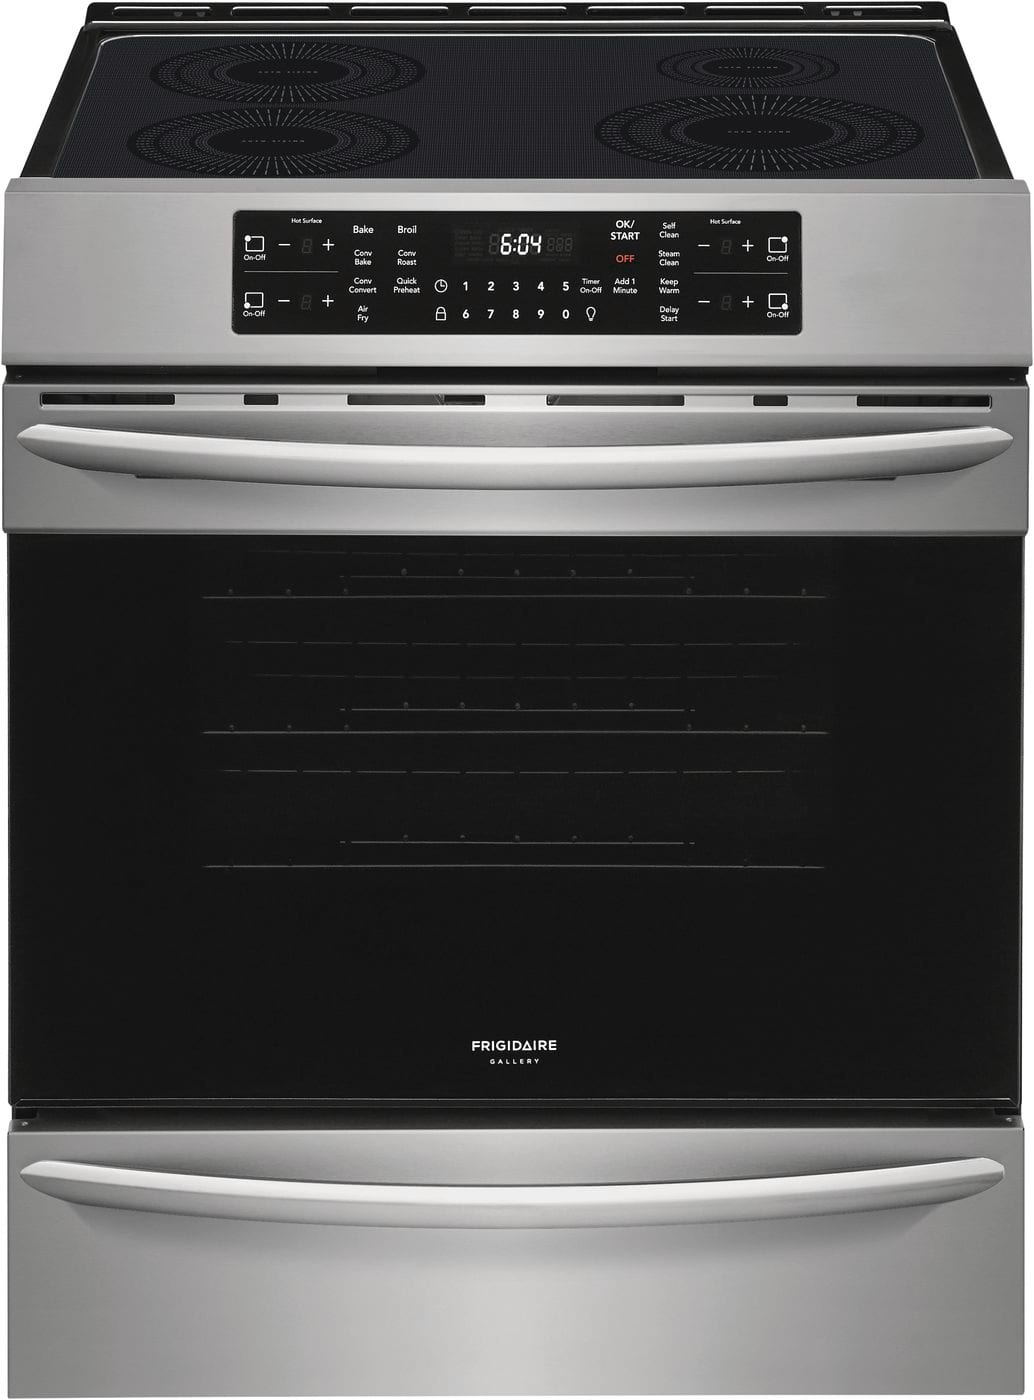 "Frigidaire Gallery 30"" Front Control Induction Range with Air Fry"